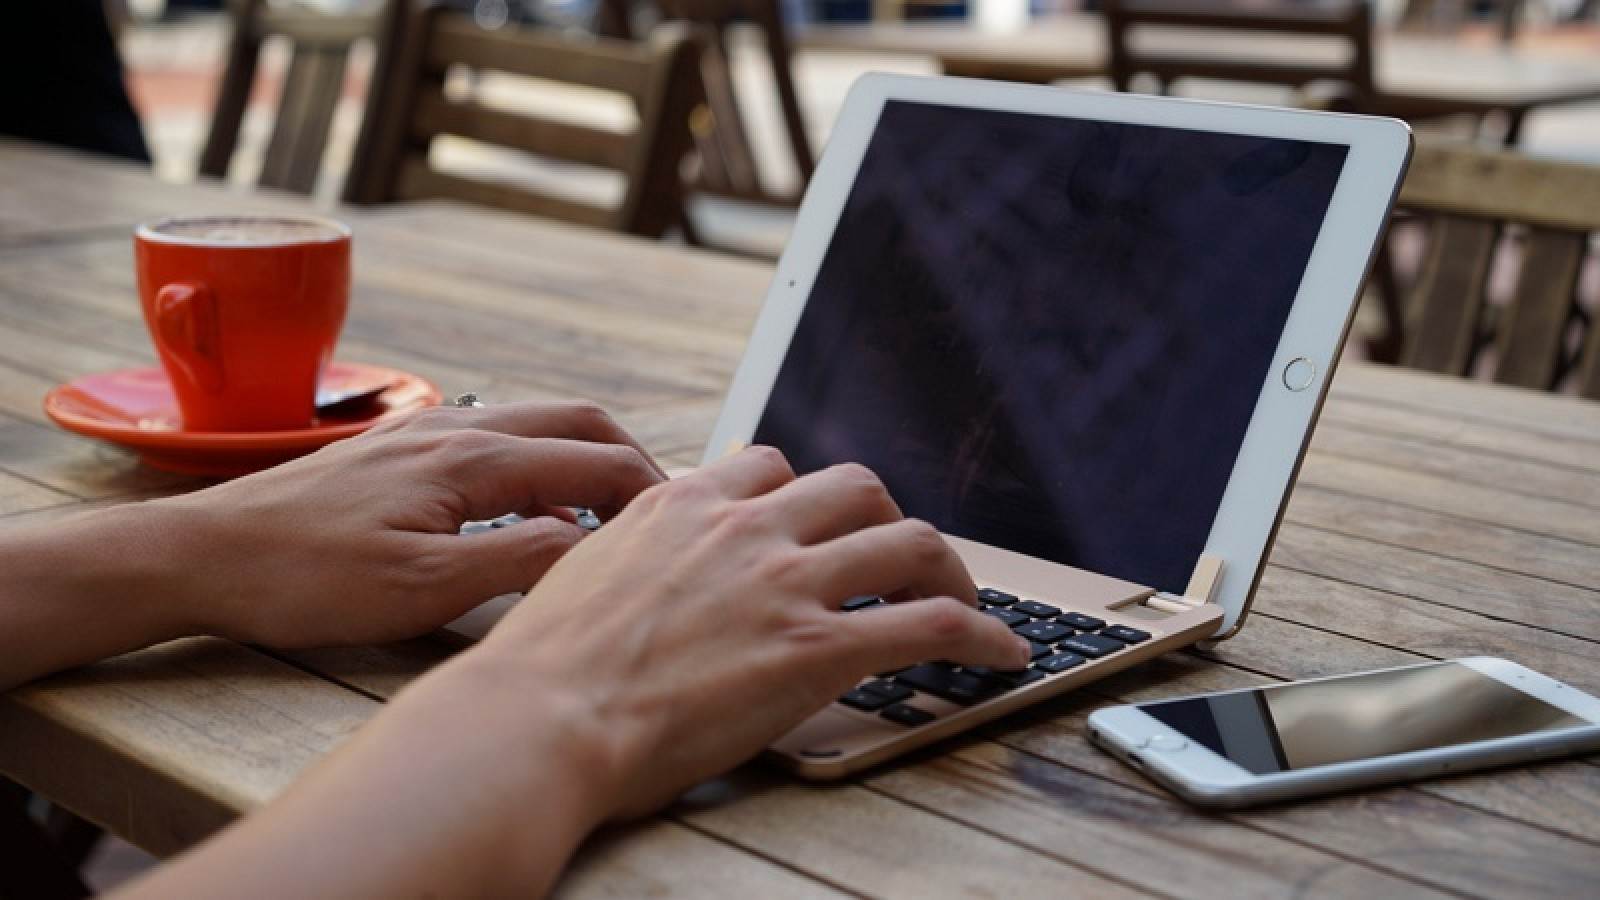 A hand is encoding on iPad using an installed keyboard. The iPad is beside a white iPhone 6s on the right and an orange cup on the left side. These items are set on an brown wooden table.